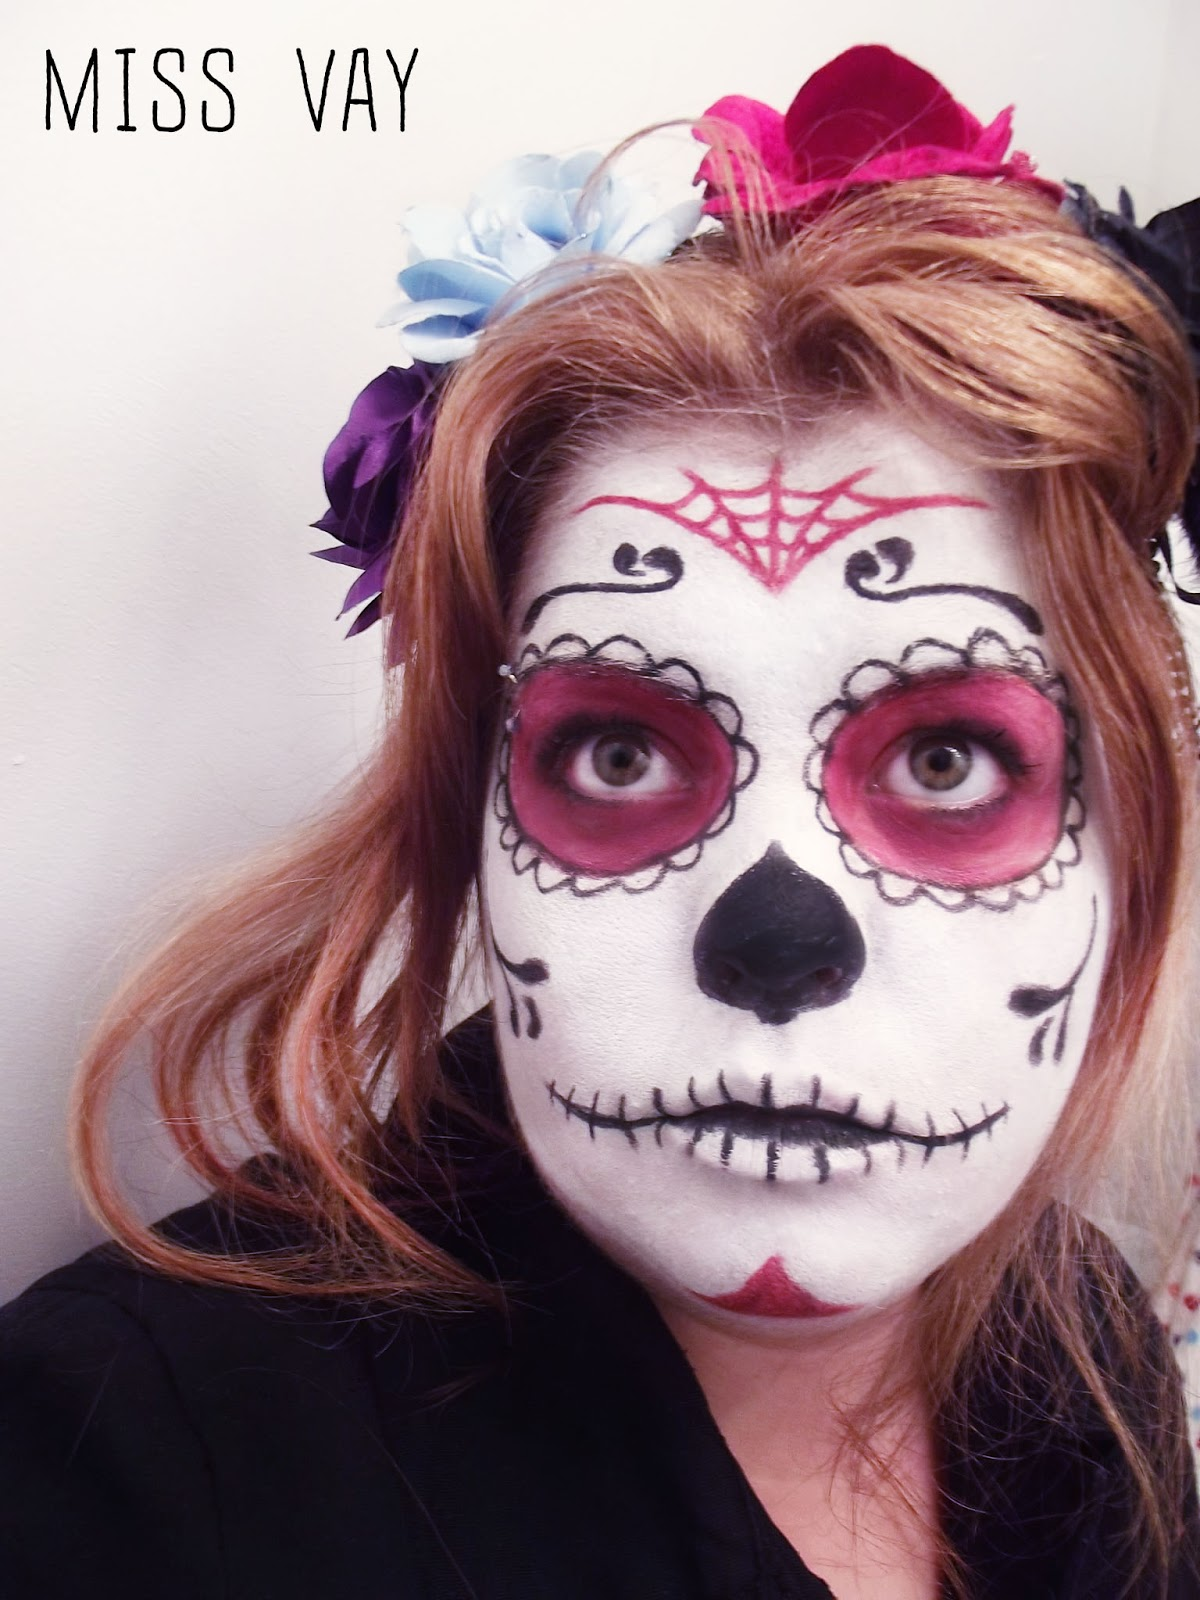 Maquillage pour le dia de los muertos sugar skull calaveras miss vay blogue lifestyle - Maquillage mexicain facile ...